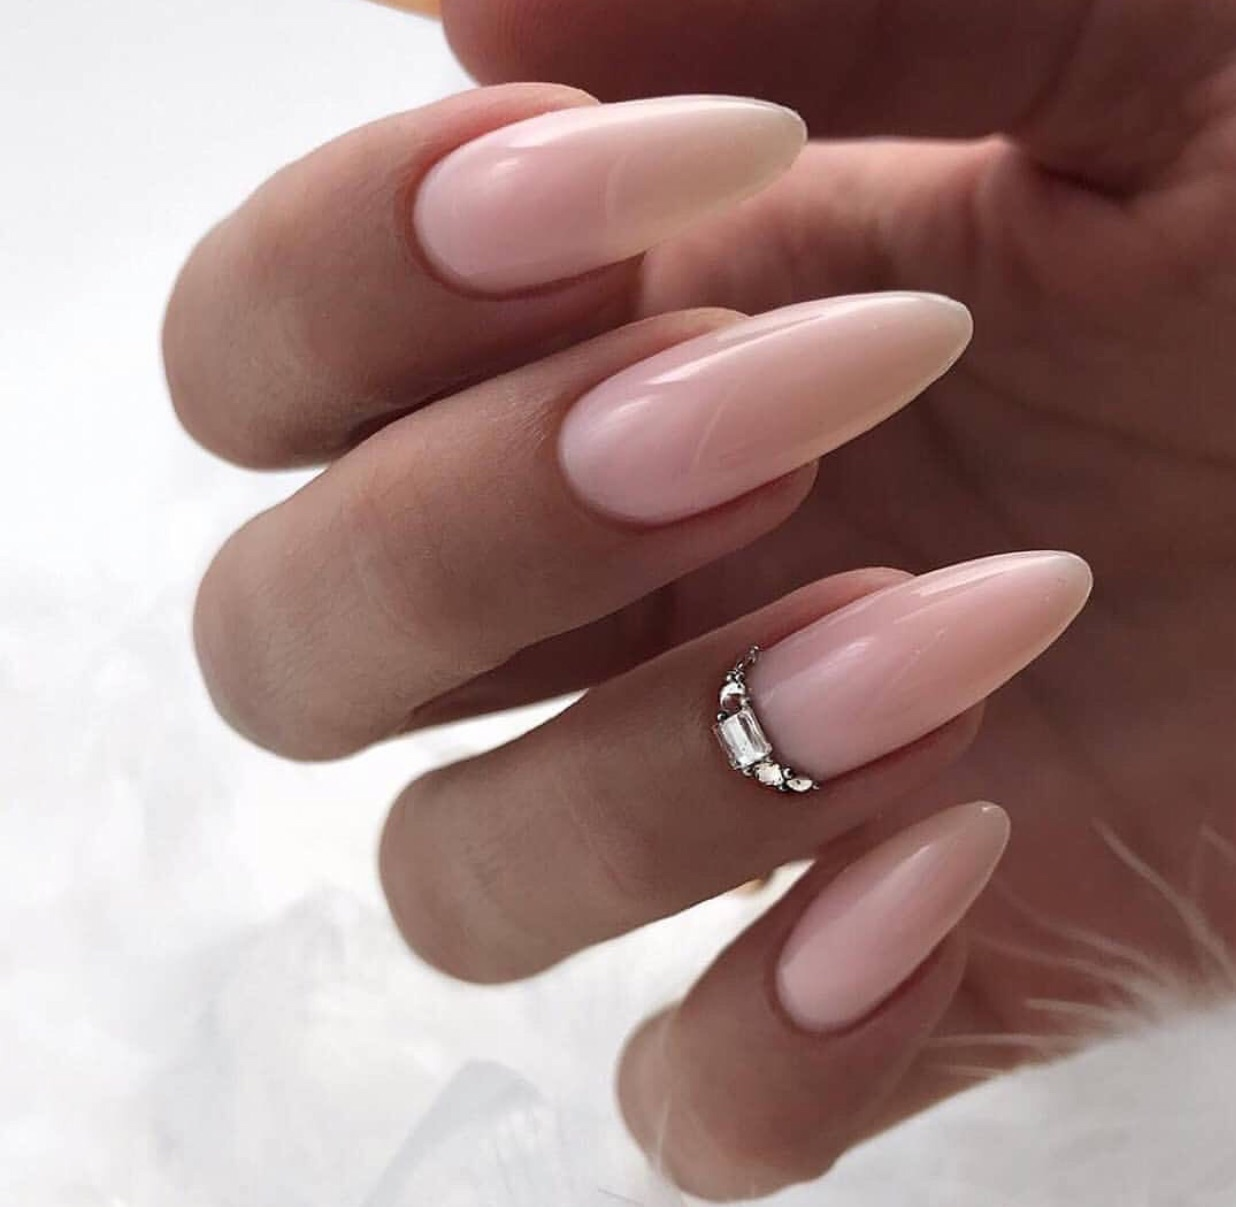 nails, diamant, jewellery and accessories